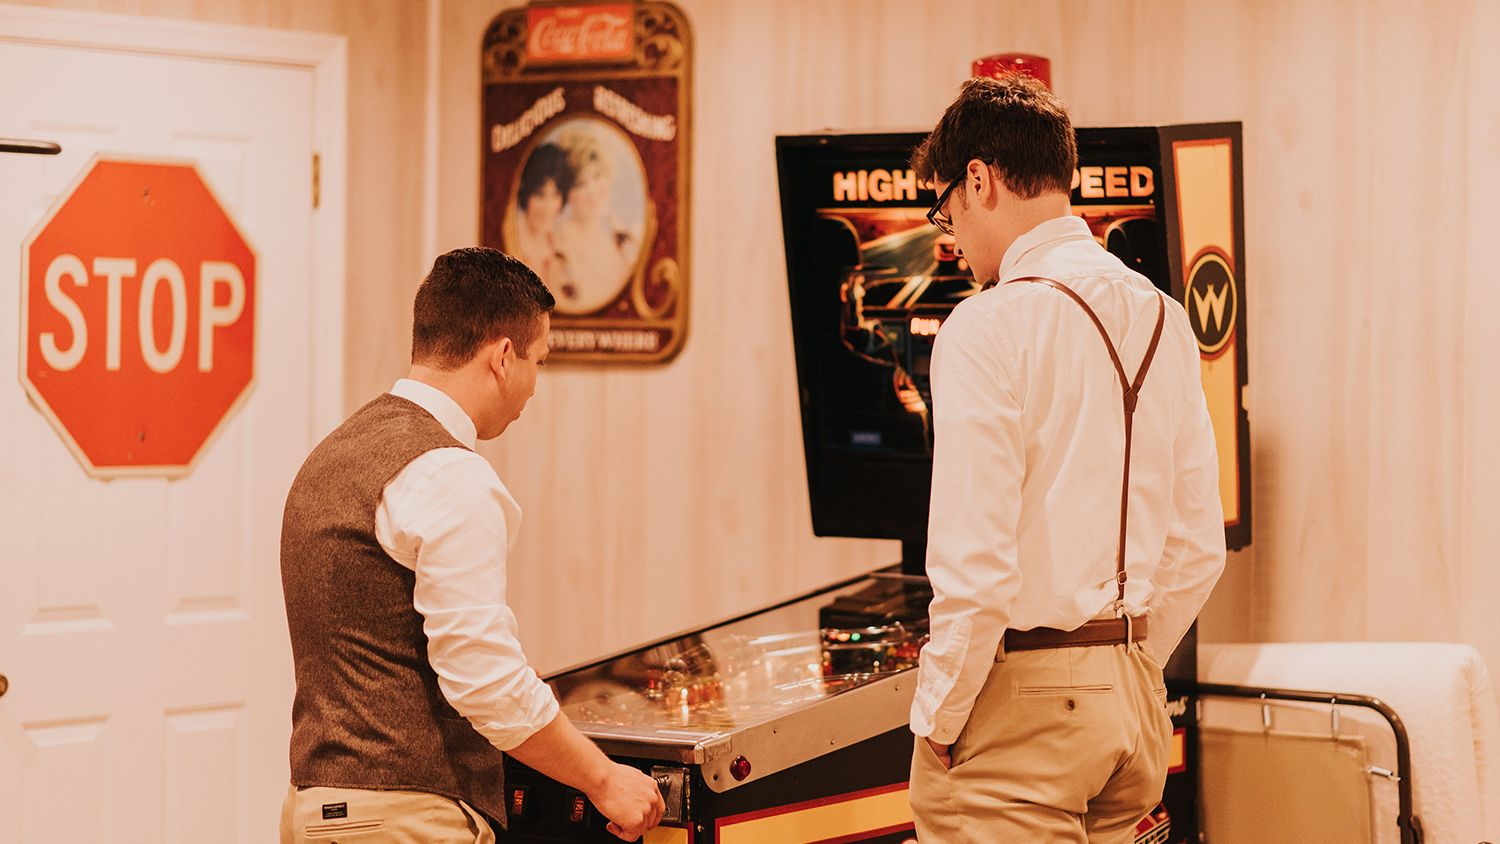 Groom Playing Pinball in Game Room